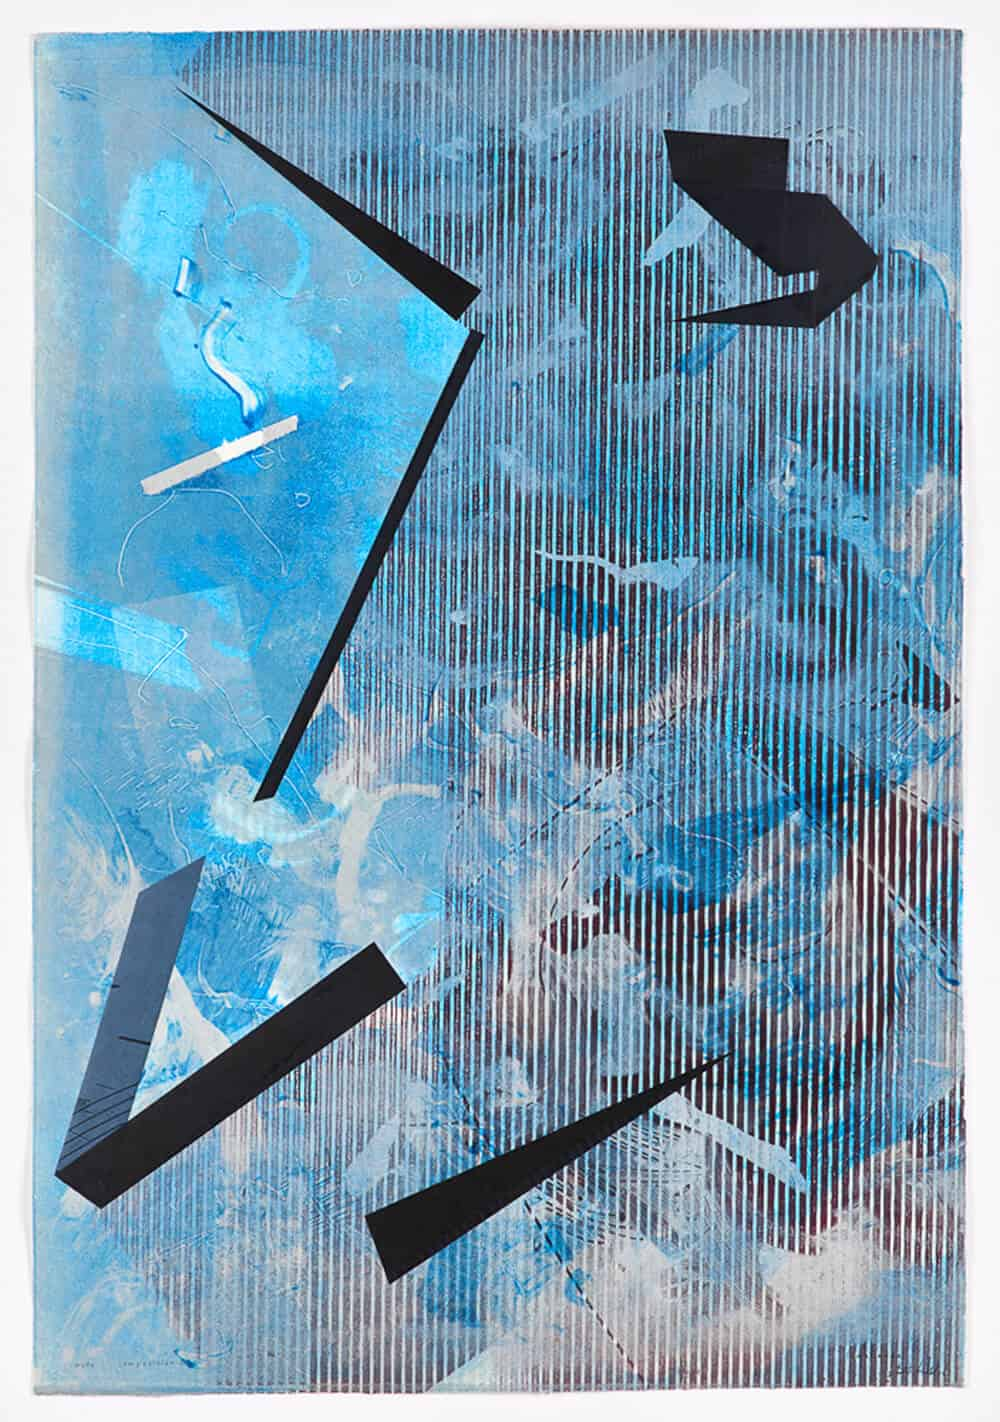 Bevan de Wet (with Io Makandal), Composition D I, 2017. Monotype, 78,5x54cm. Courtesy of the artist & Berman Contemporary.